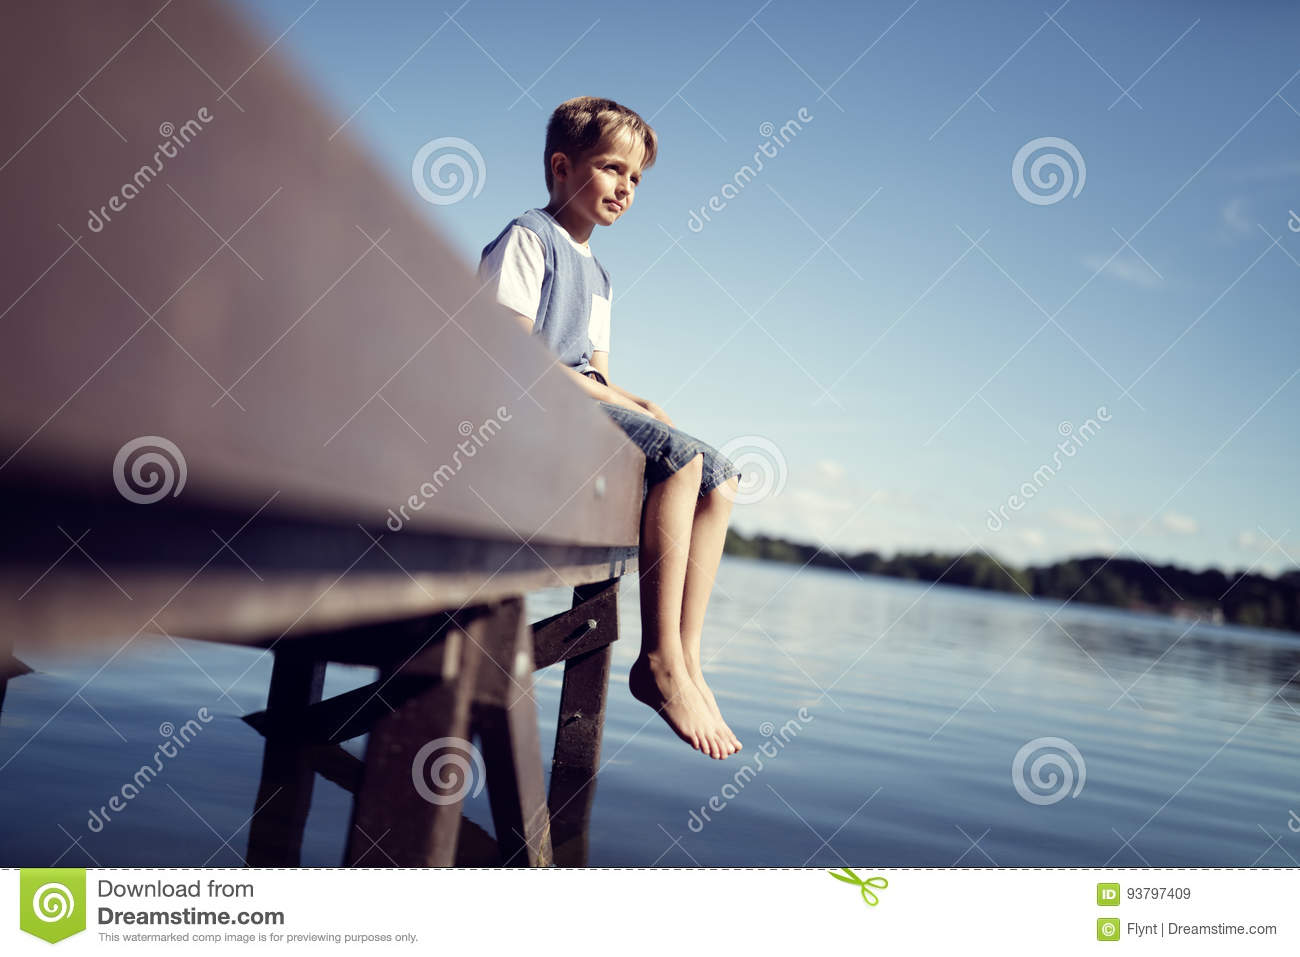 Boy with legs dangling from pier